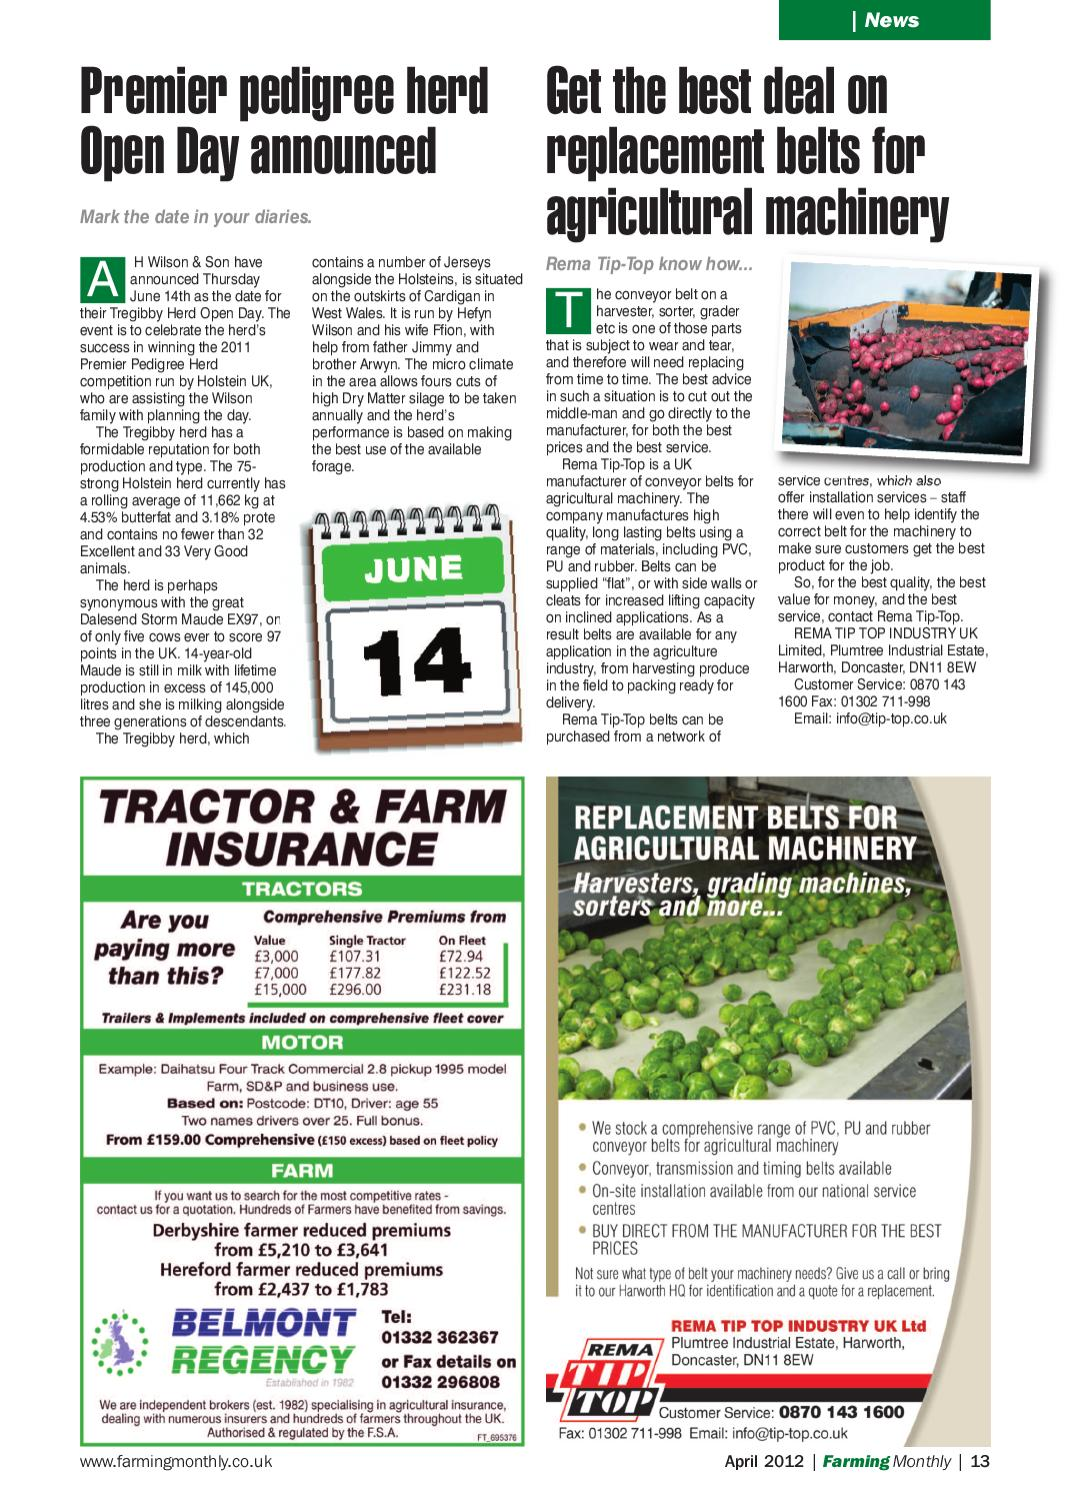 April 2012 Farming Monthly National by Farming Monthly Ltd